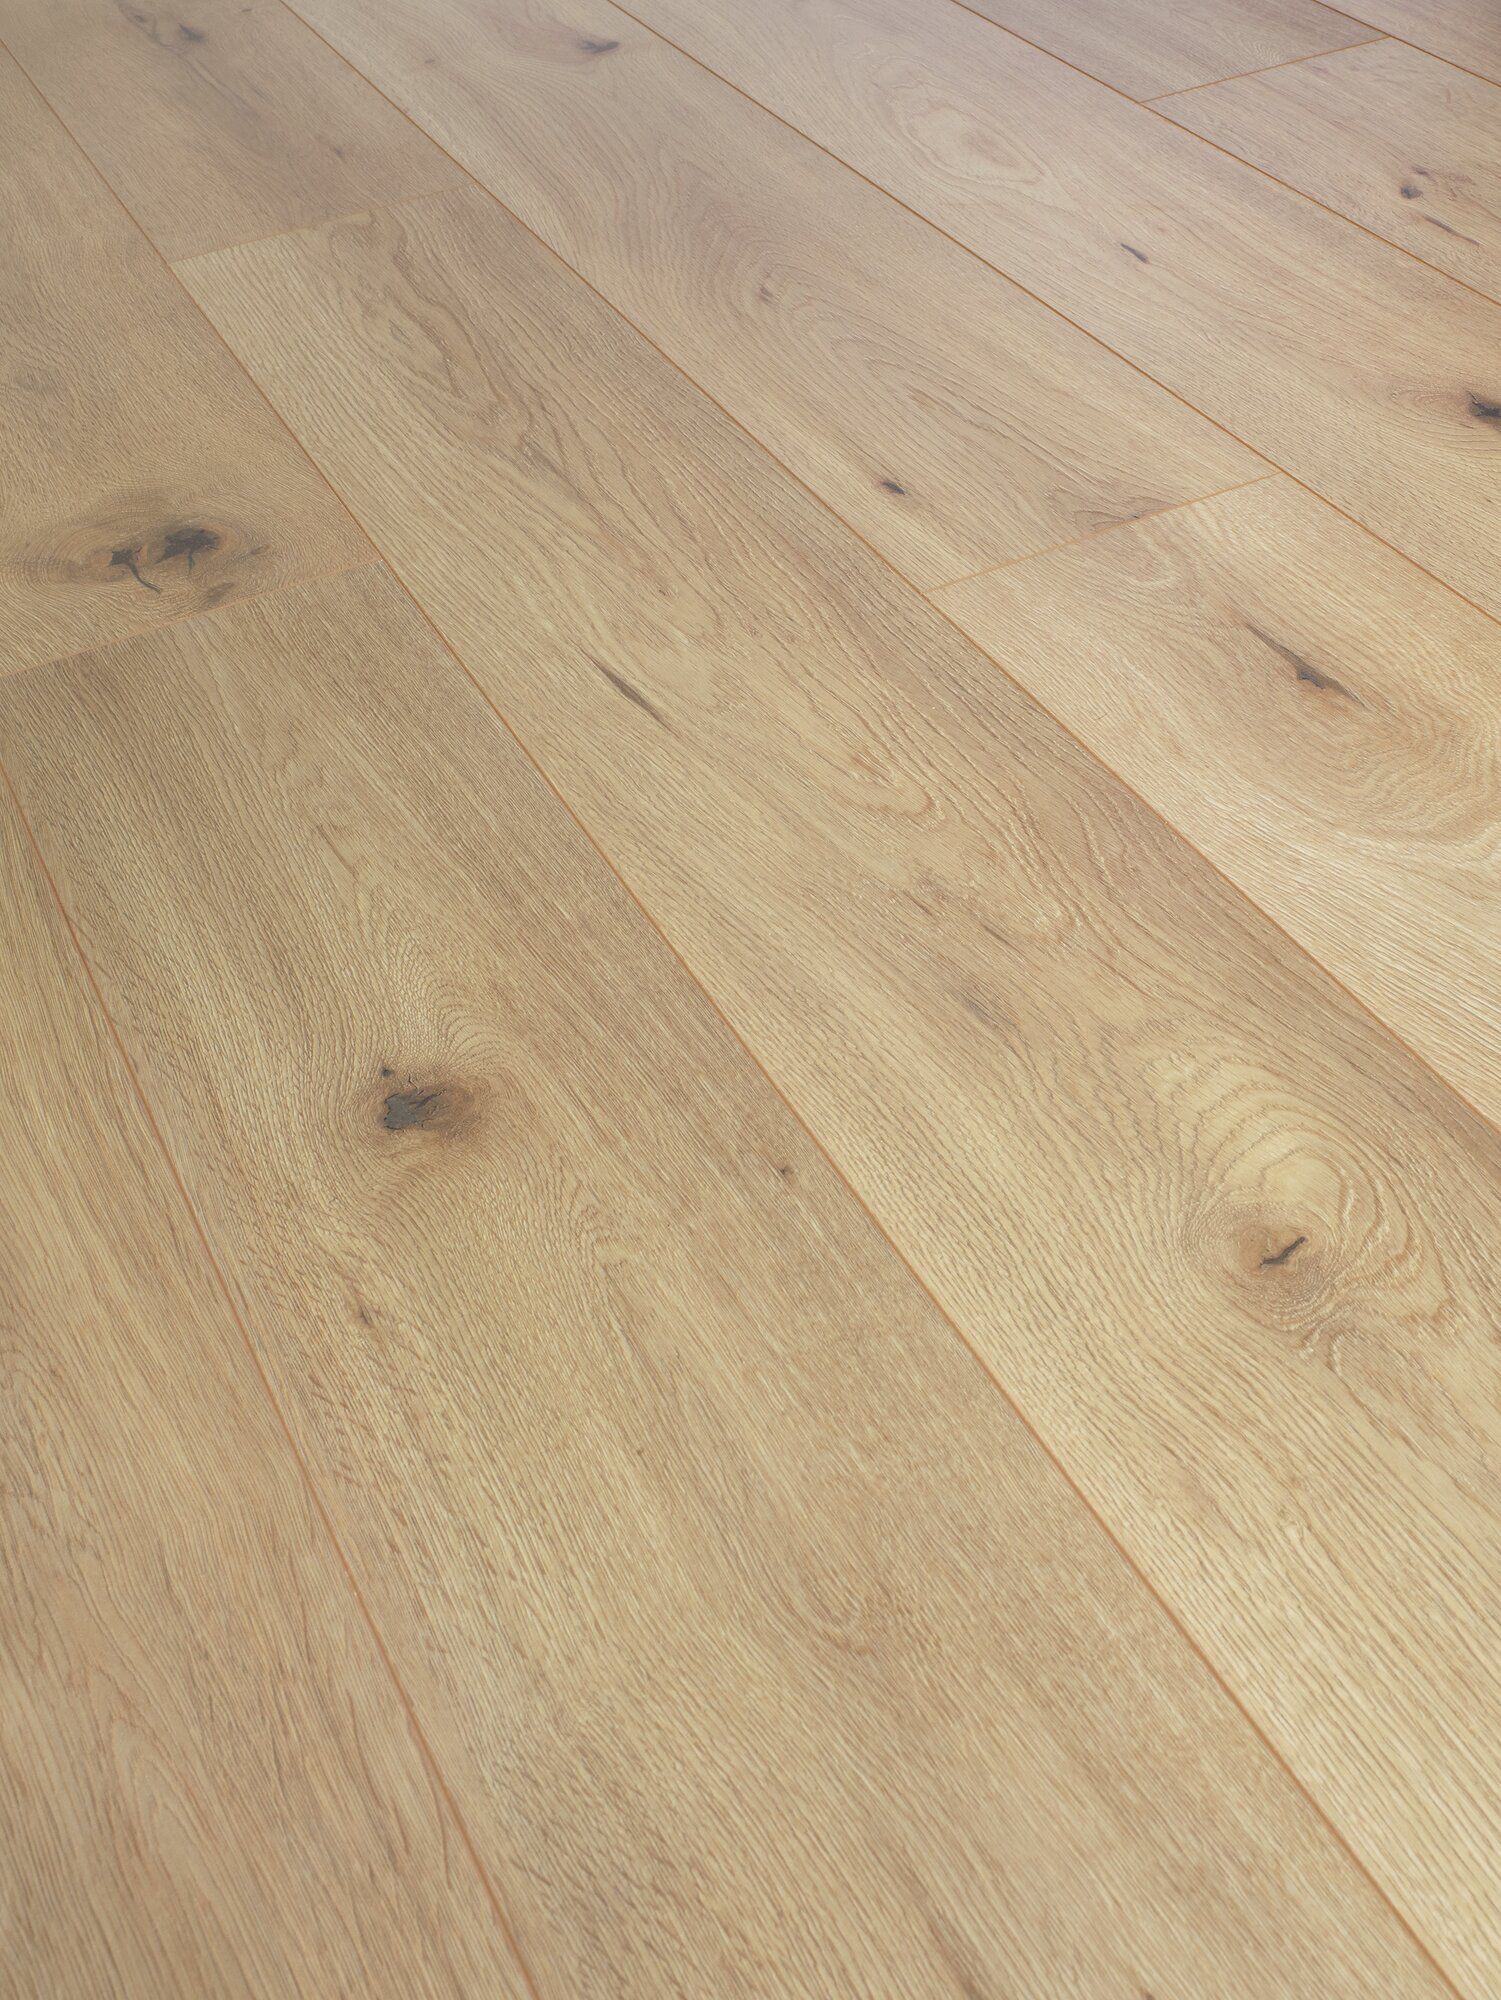 Parchet laminat rezistent la apa Swiss Krono Aquastop Artisan Oak Natural D 4660 imagine